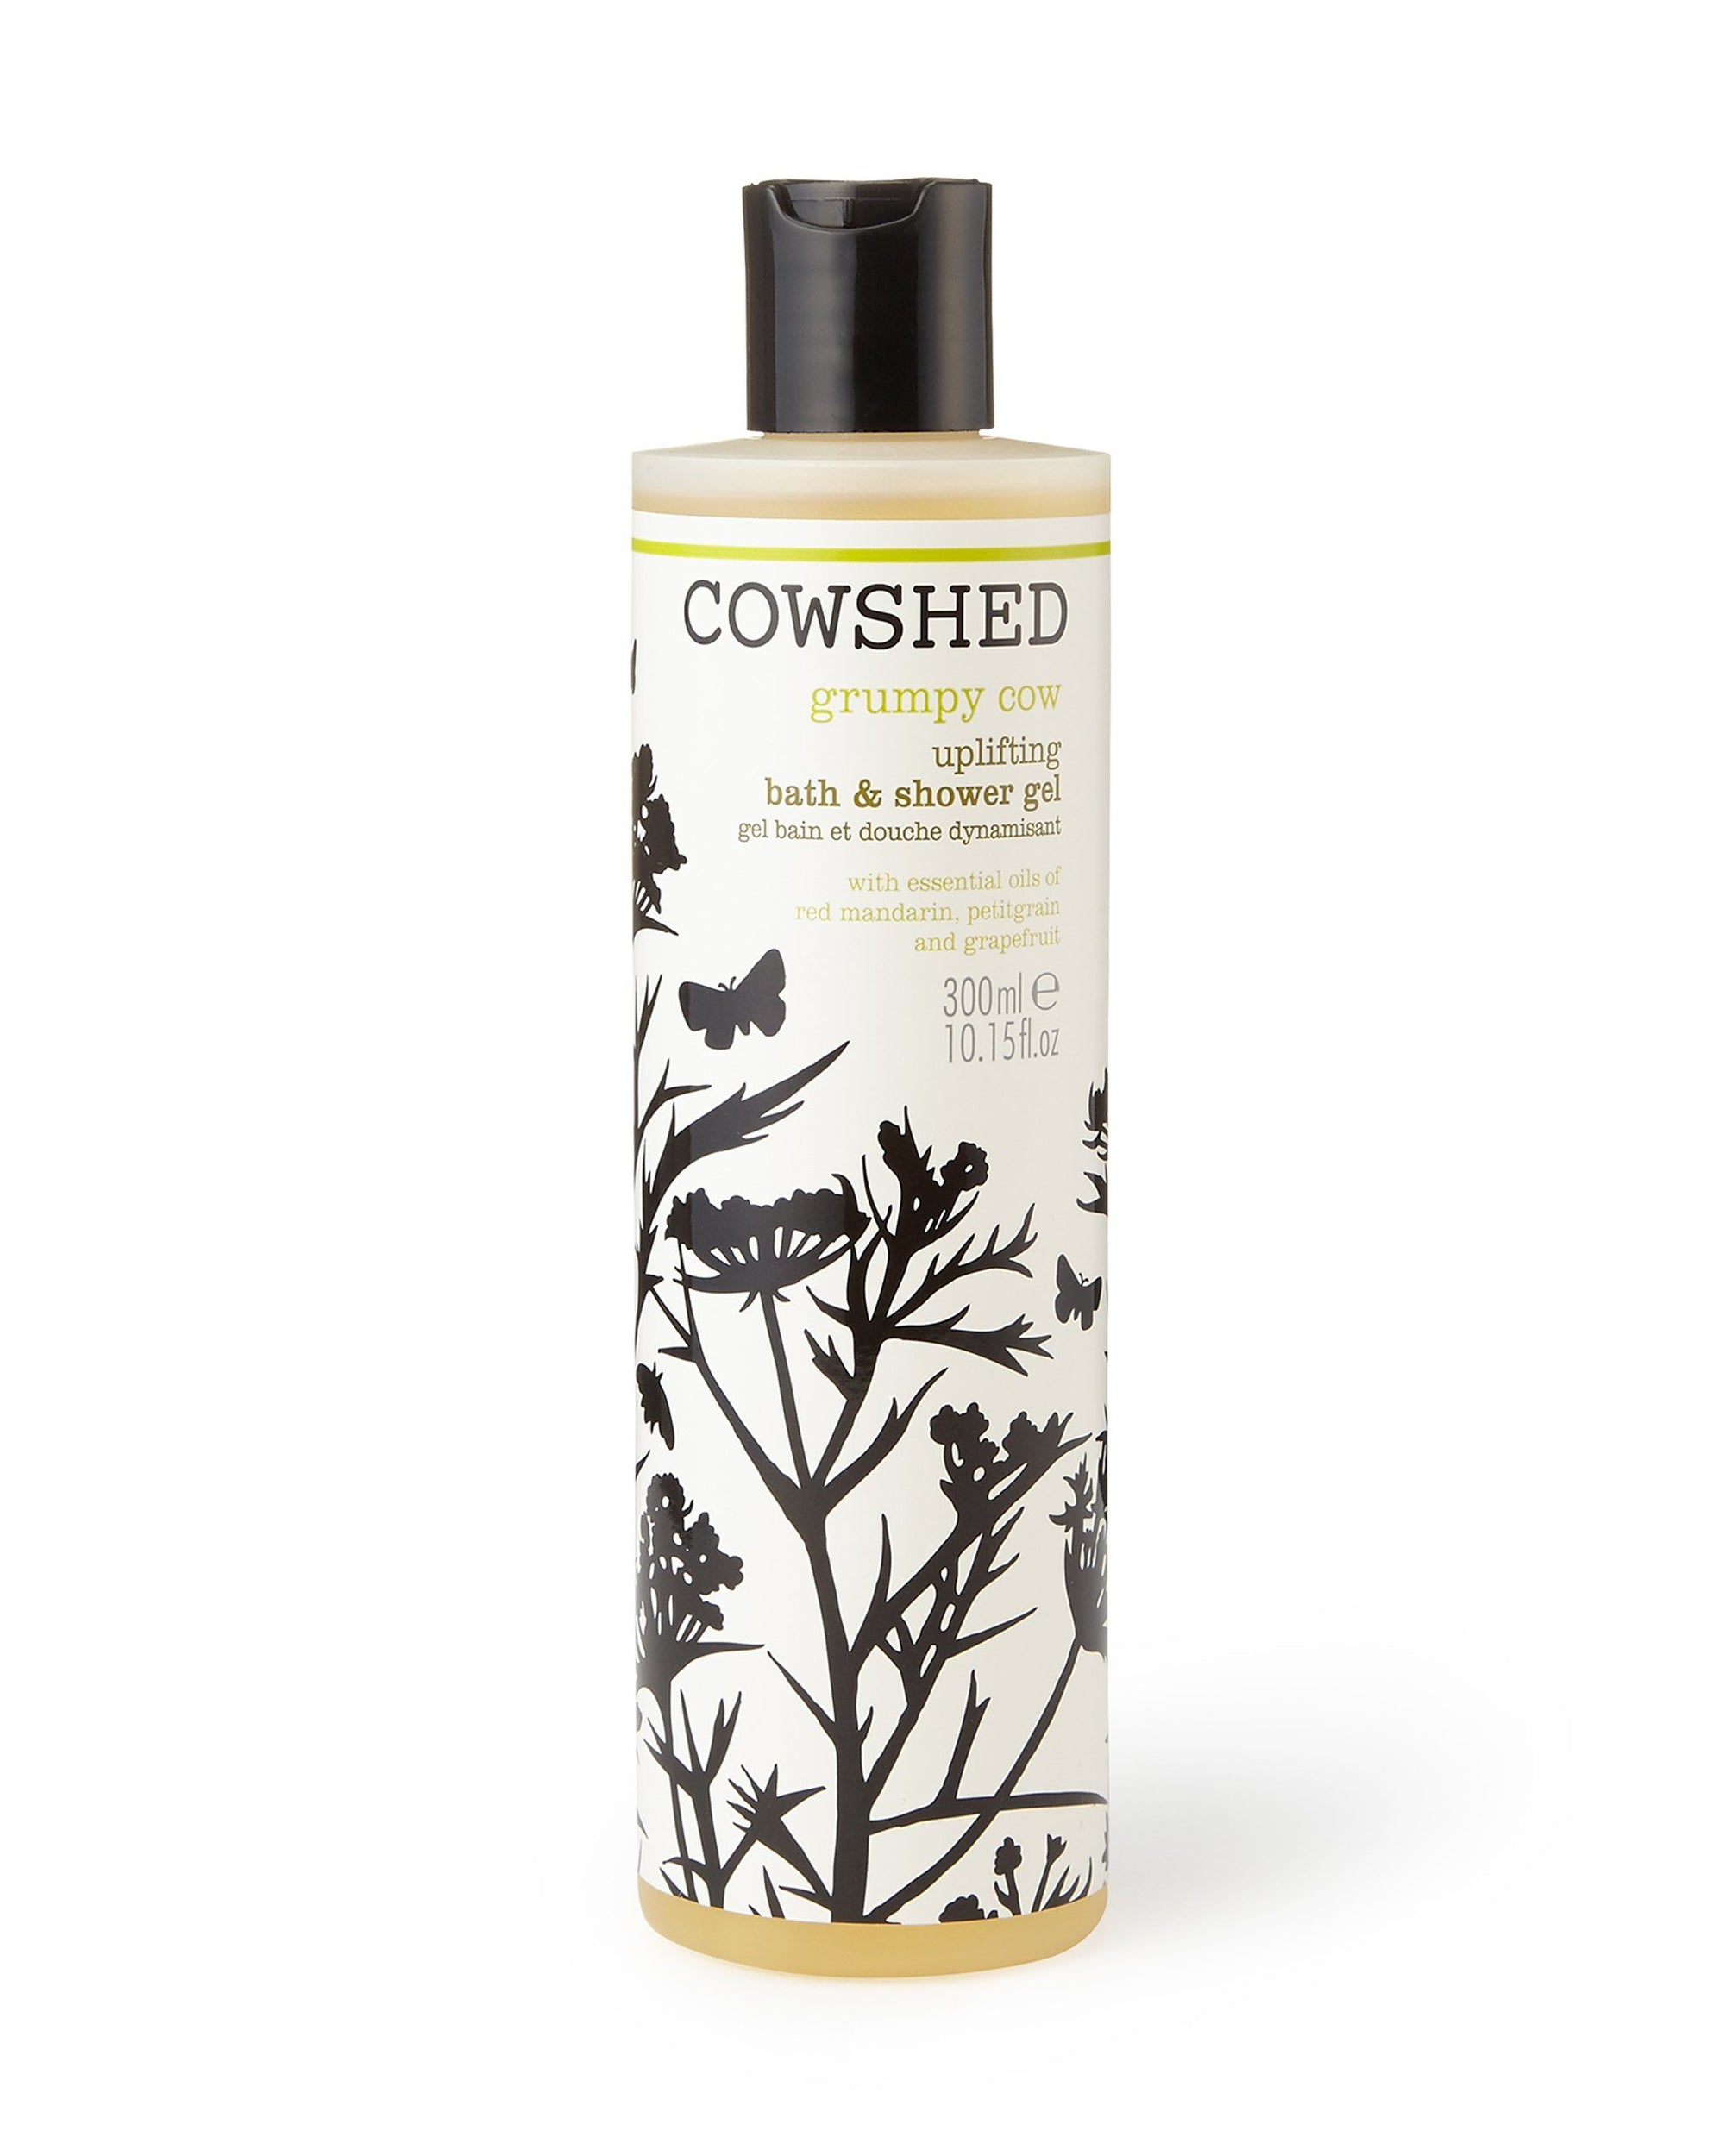 Grumpy Cow Uplifting Bath & Shower Gel (300ml) Cowshed - BouChic